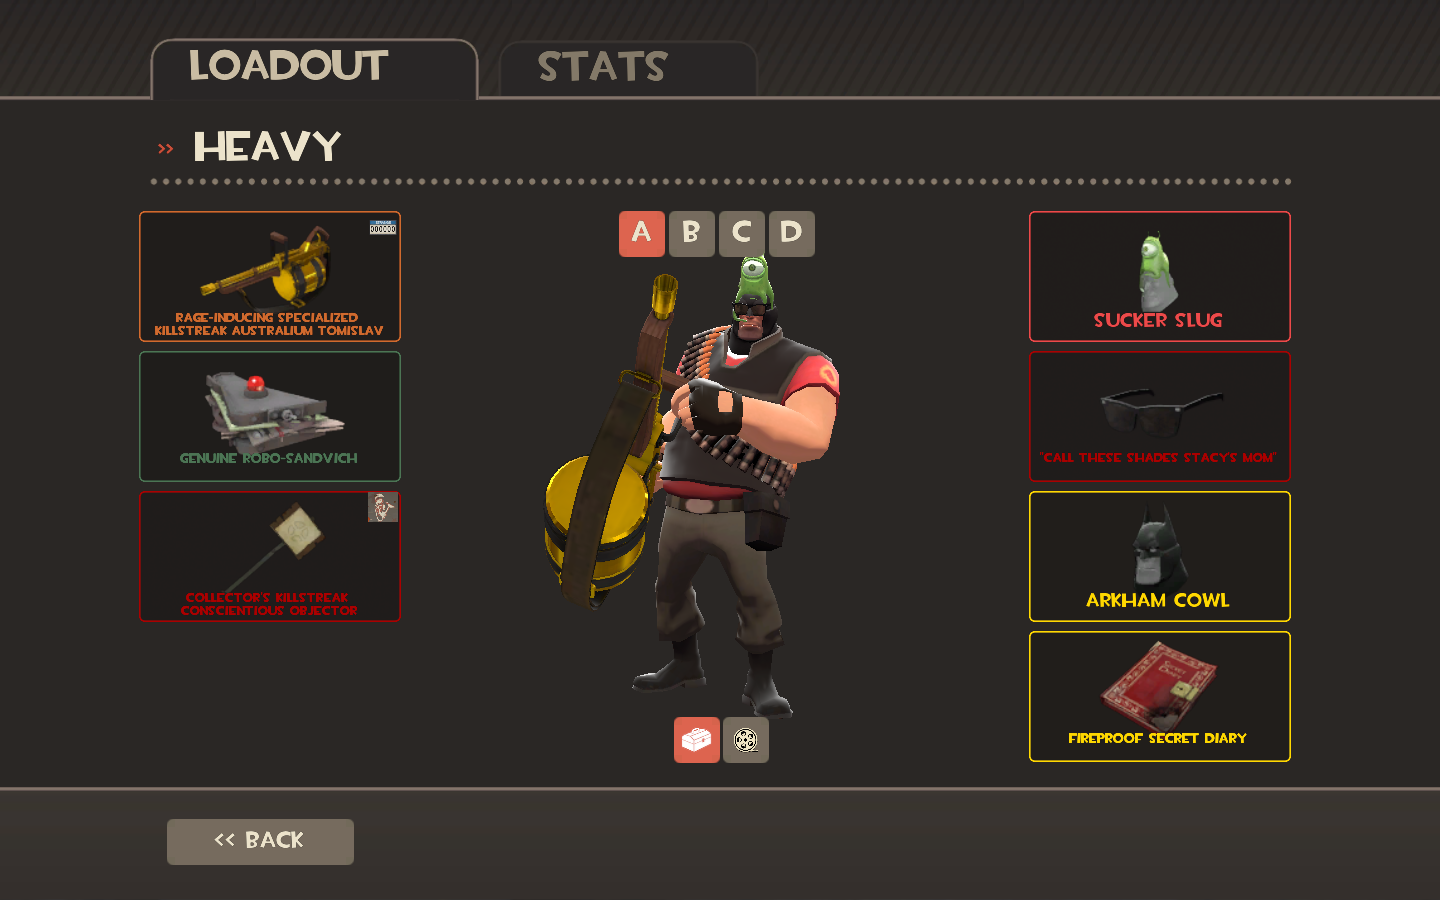 Best Bad Loadouts Team Fortress 2 Discussions